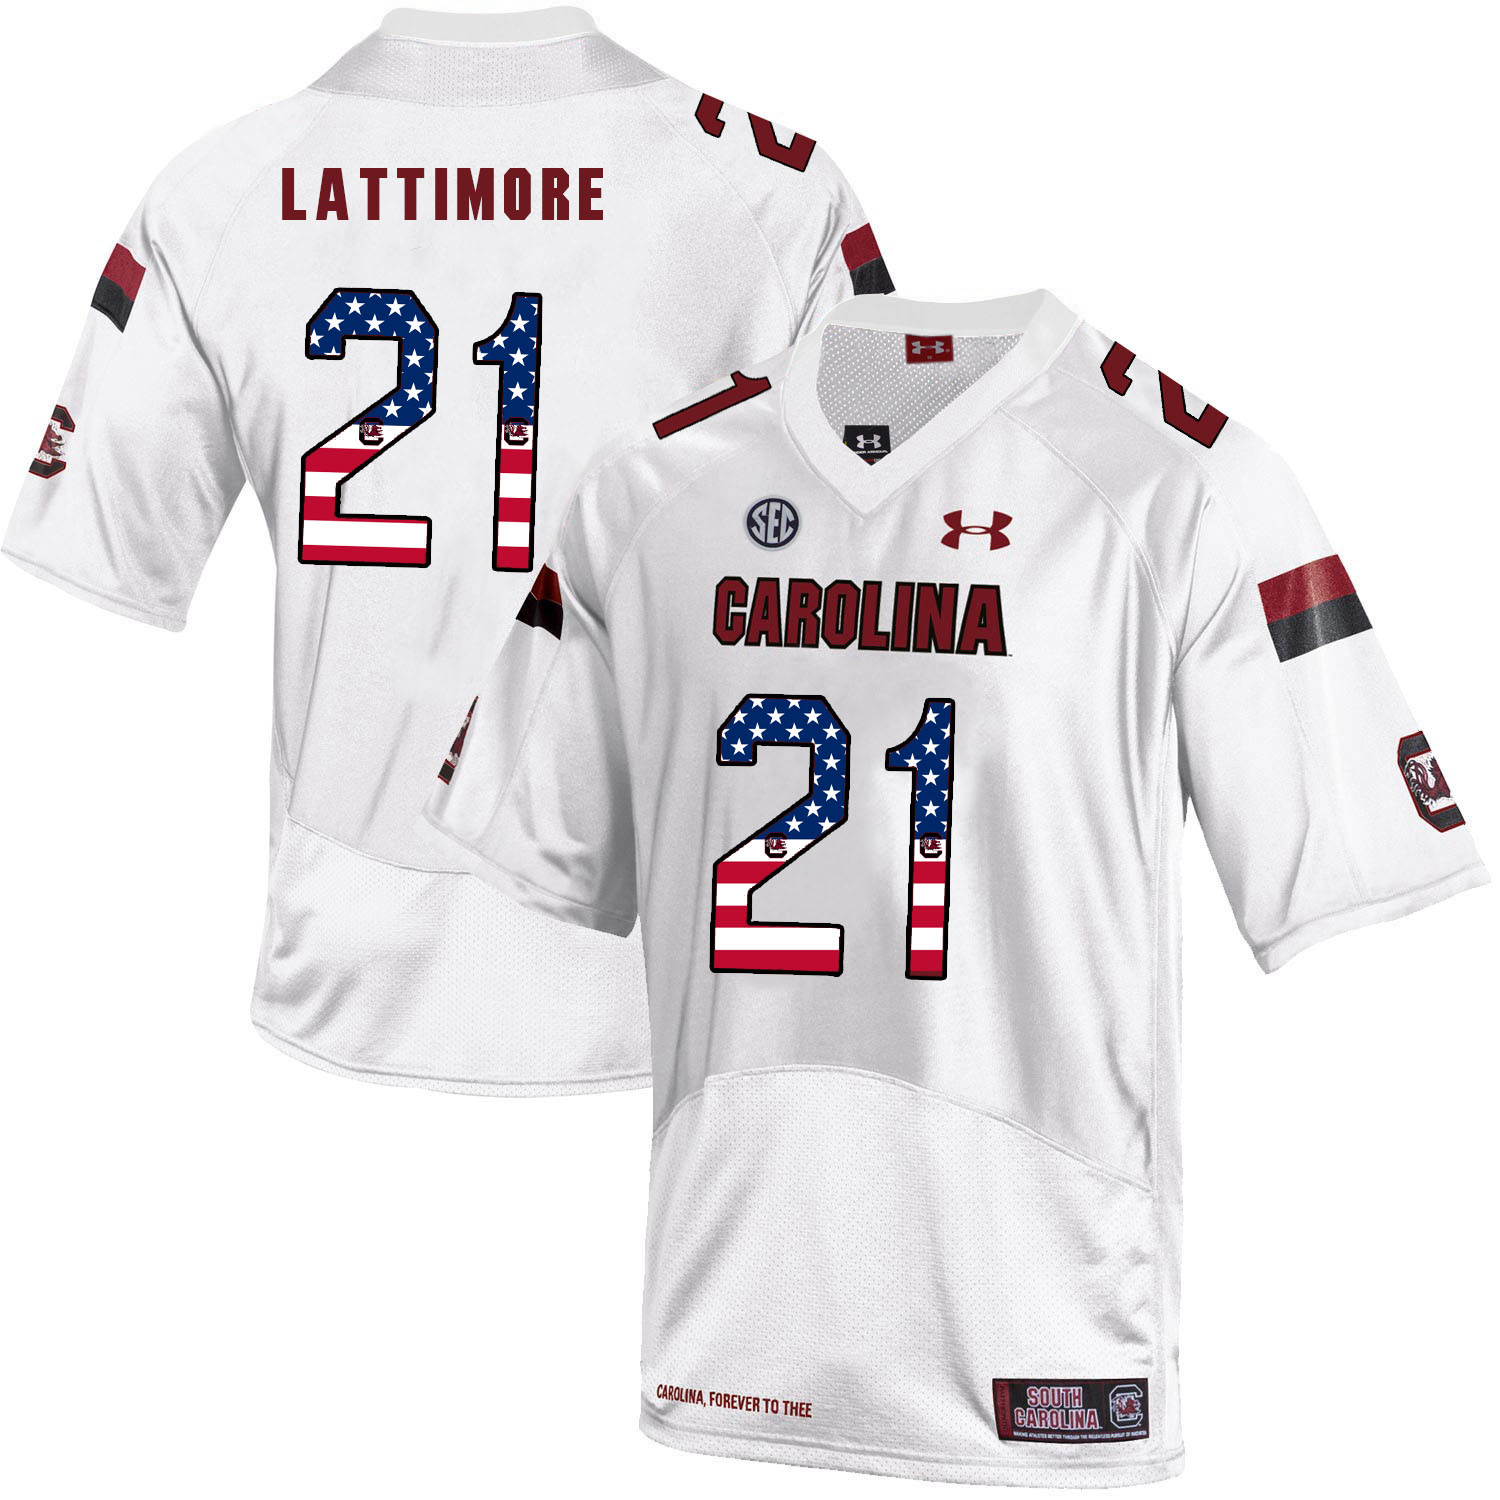 South Carolina Gamecocks 21 Marcus Lattimore White USA Flag College Football Jersey